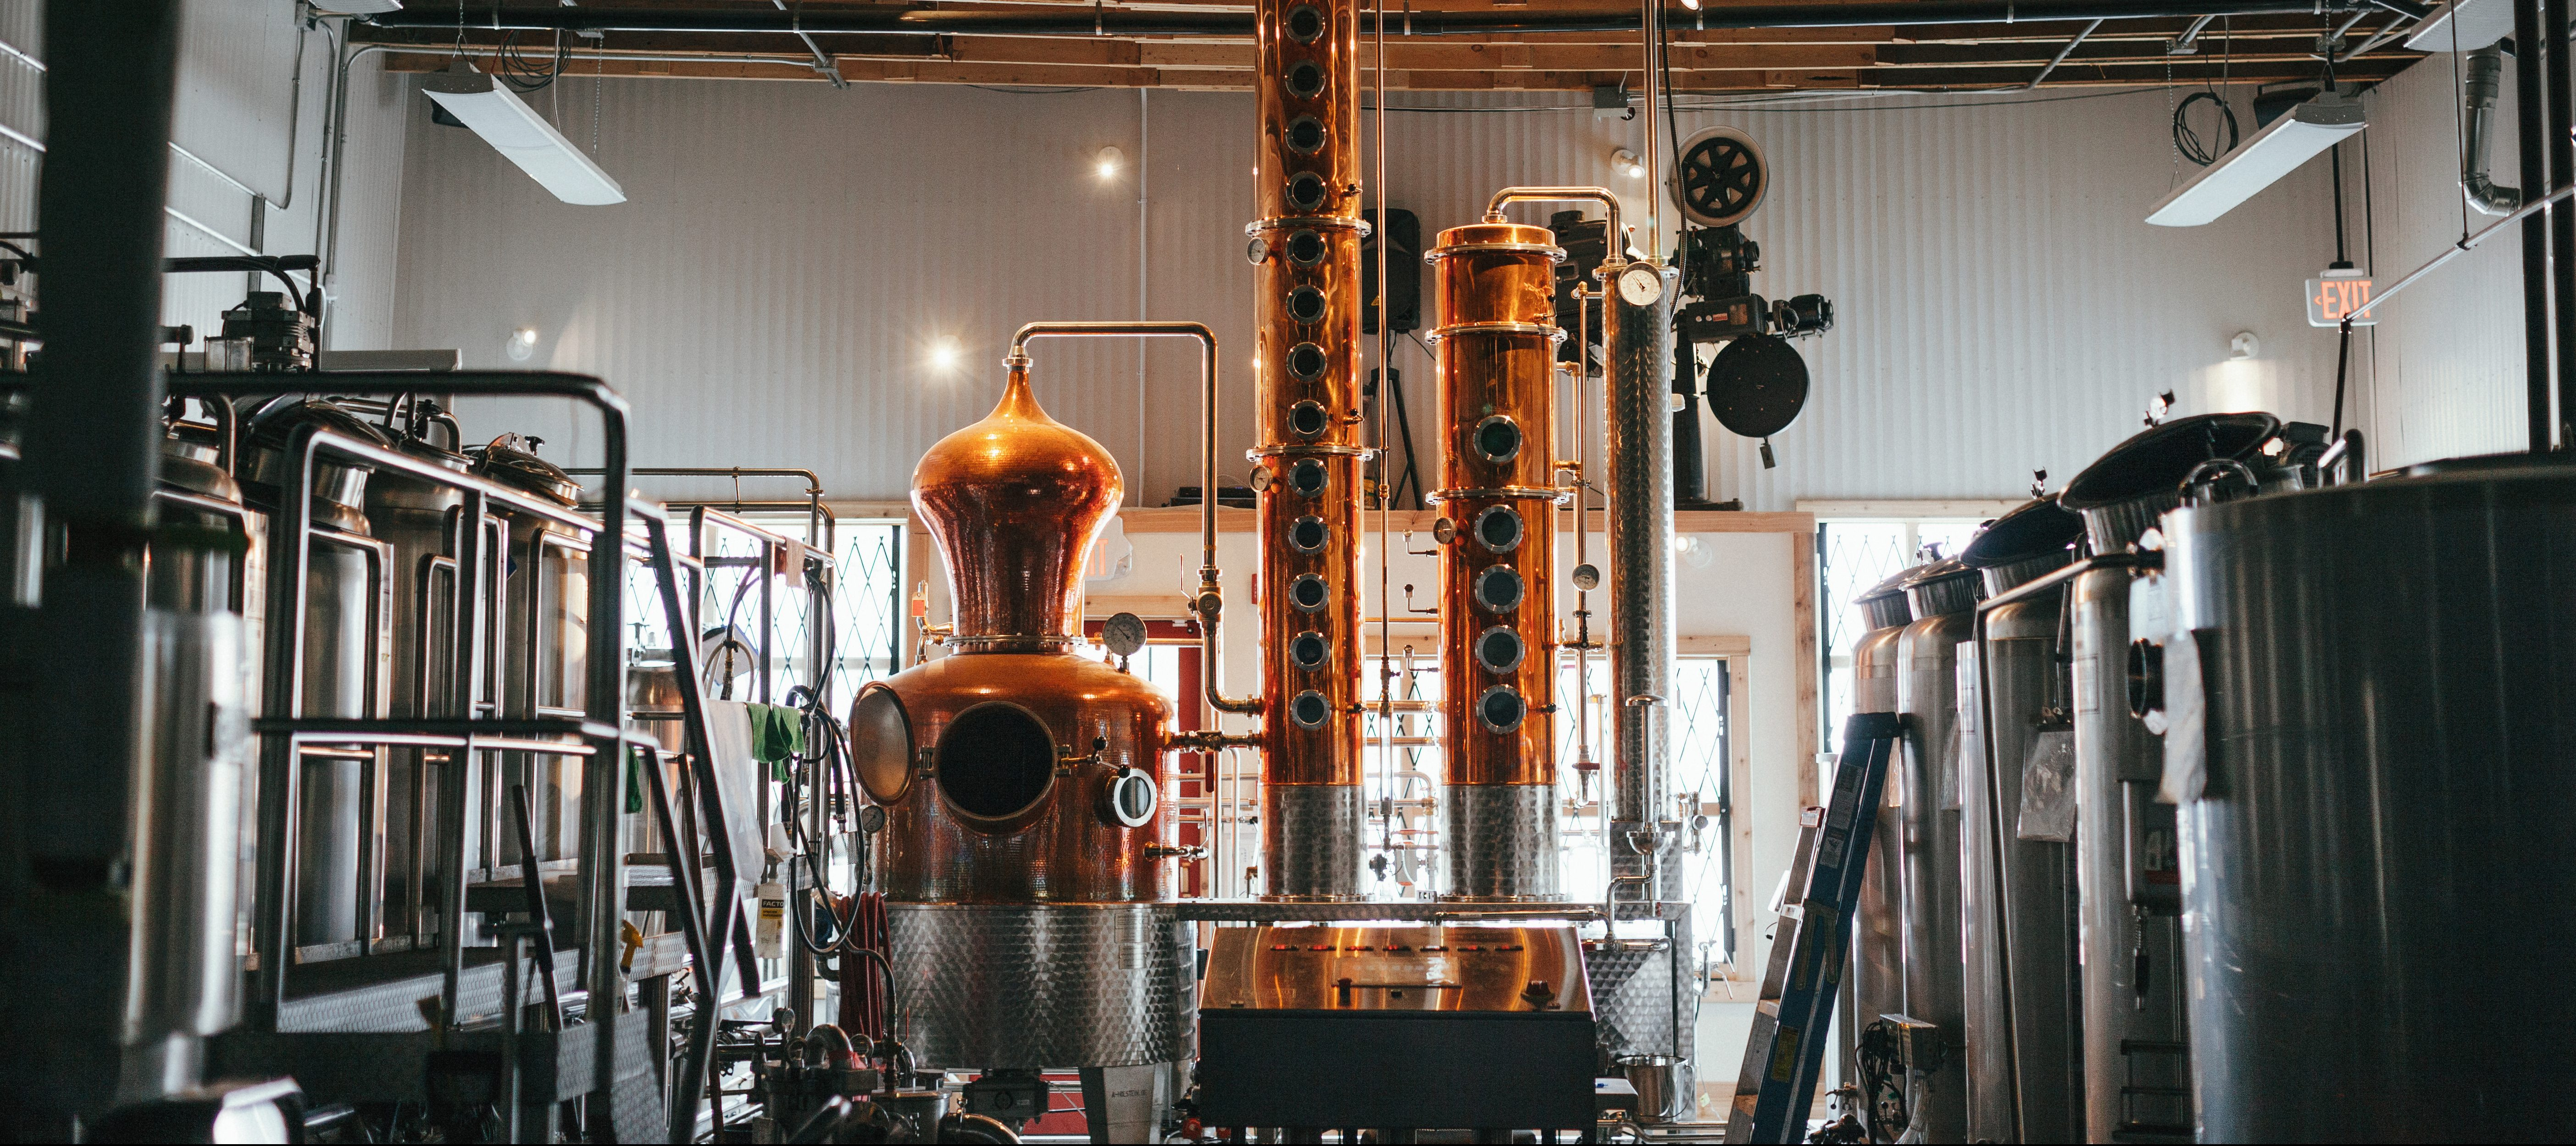 Eau Claire Distillery in Turner Valley